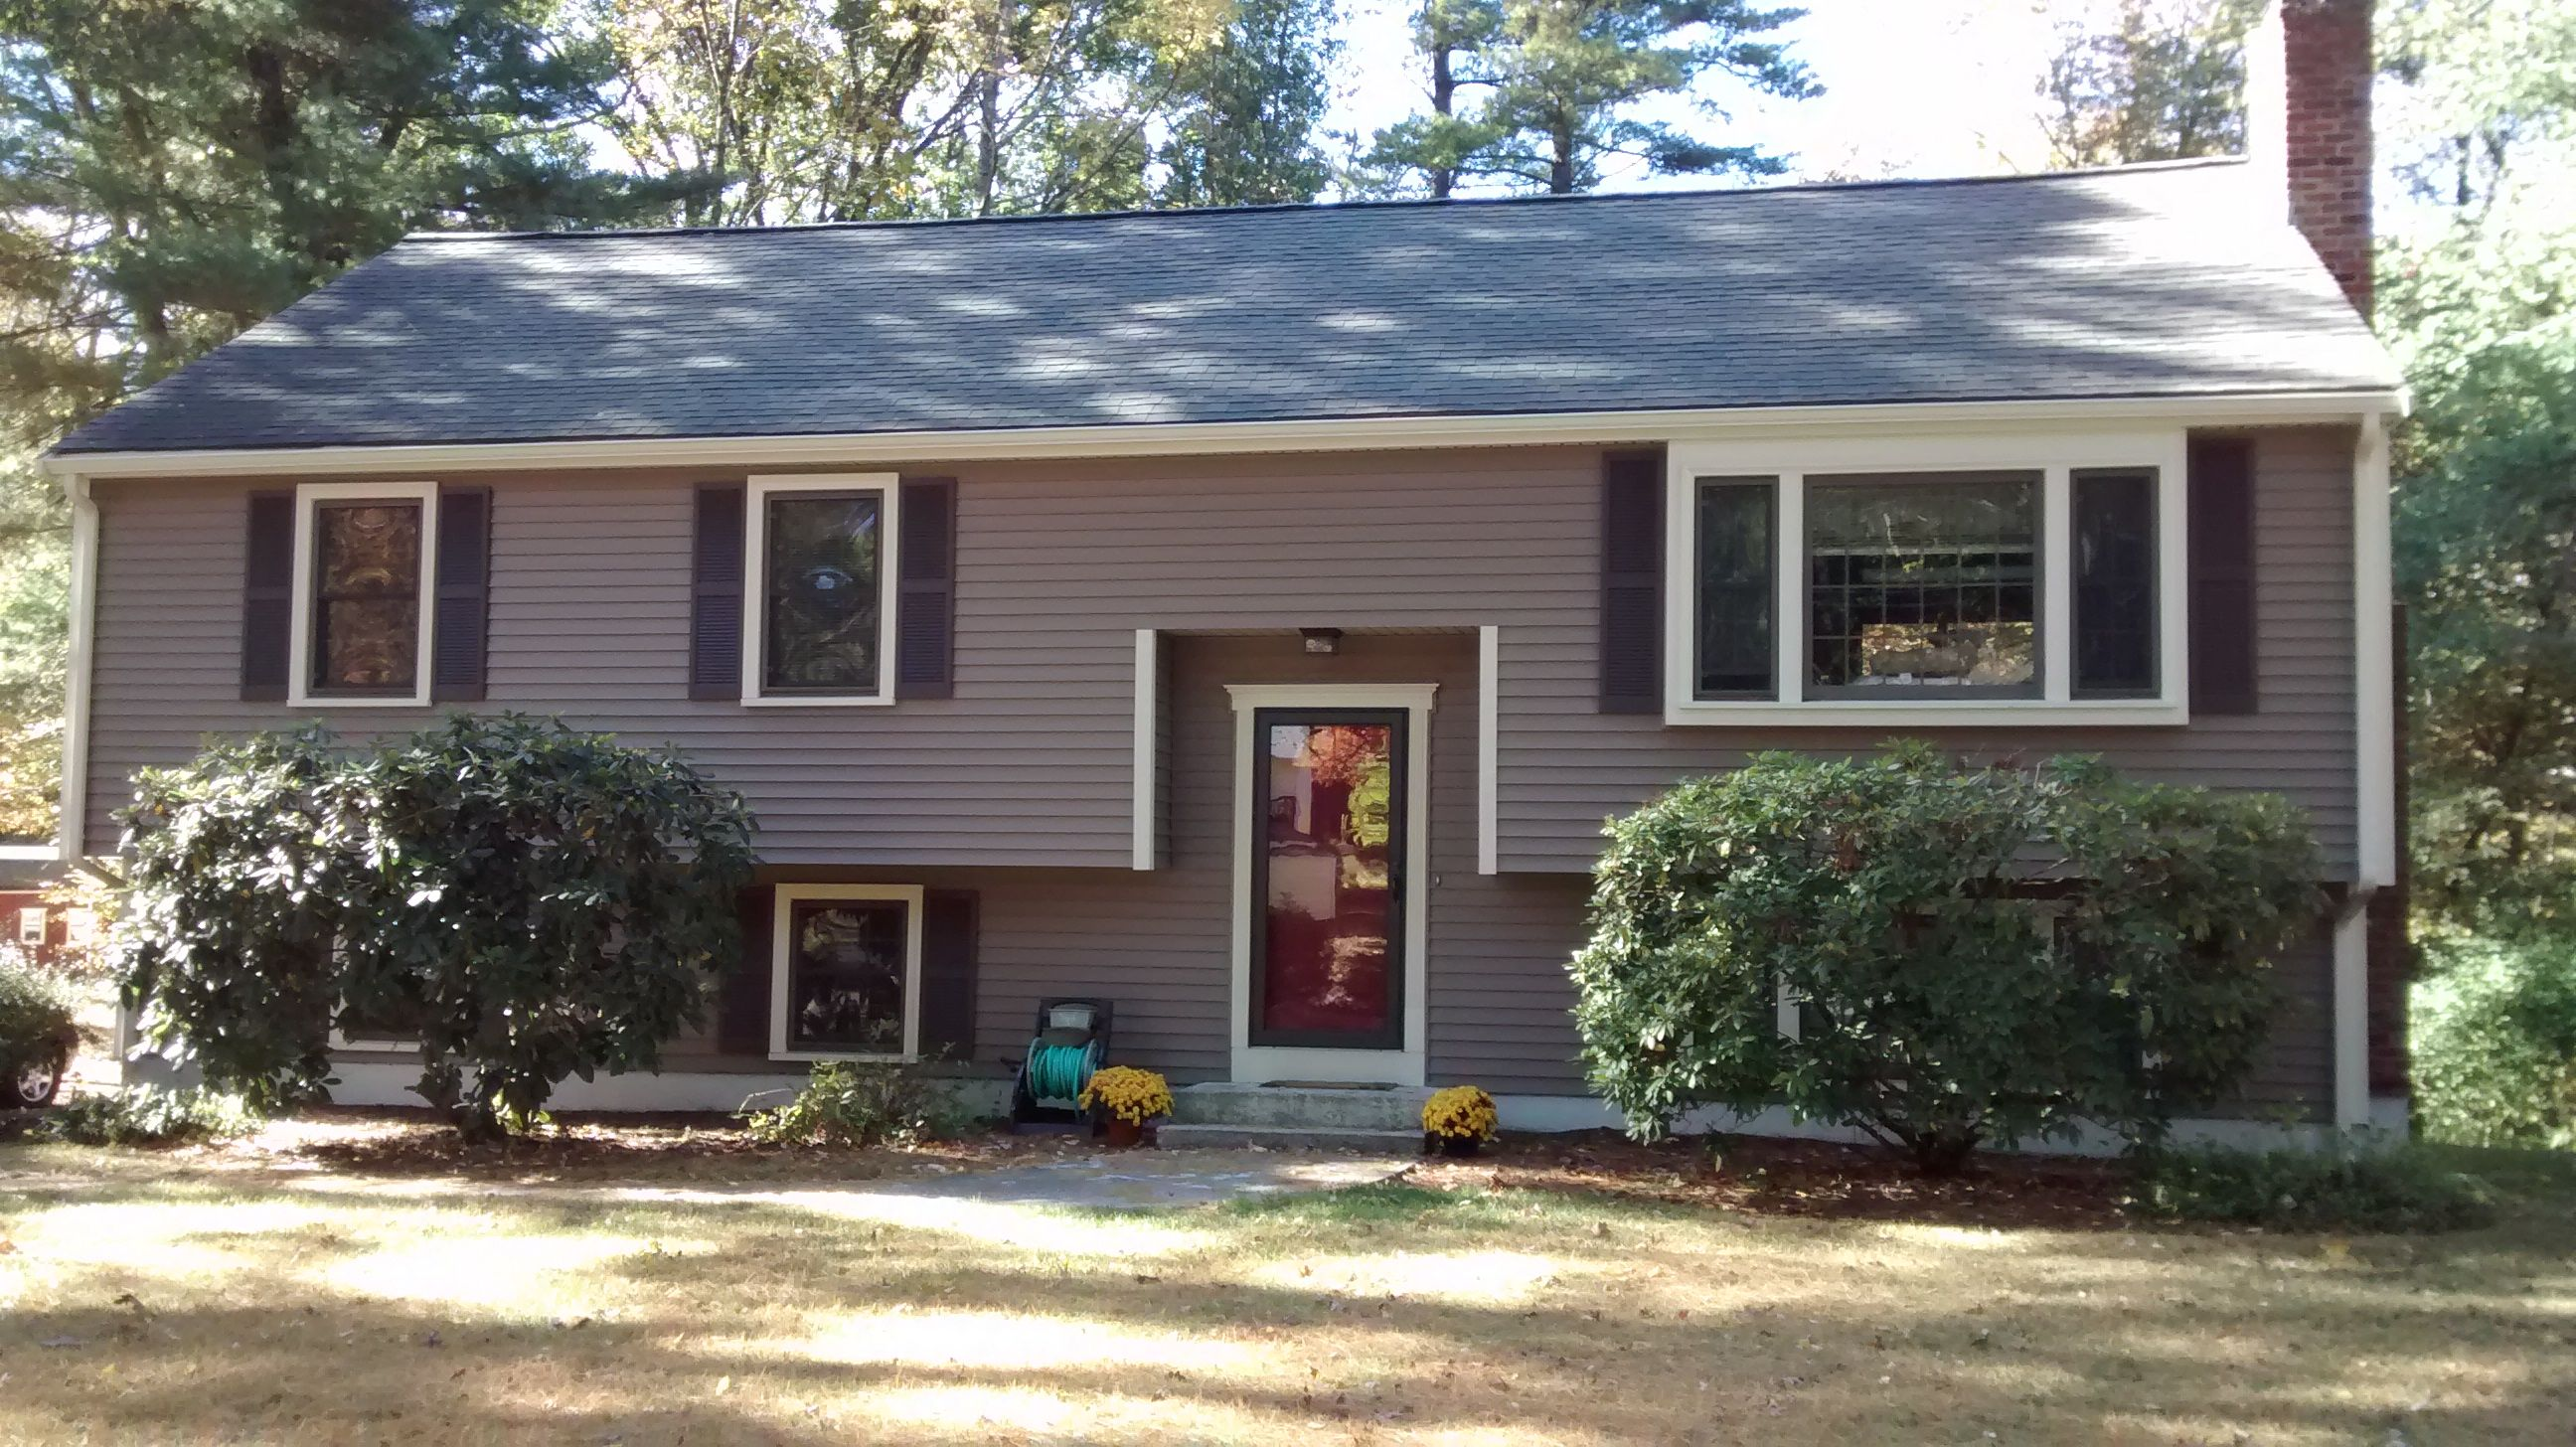 Mastic Carvedwood Vinyl Siding In Rugged Canyon With Almond Aluminum Trim Vinyl Siding Florida Home Cottage Style